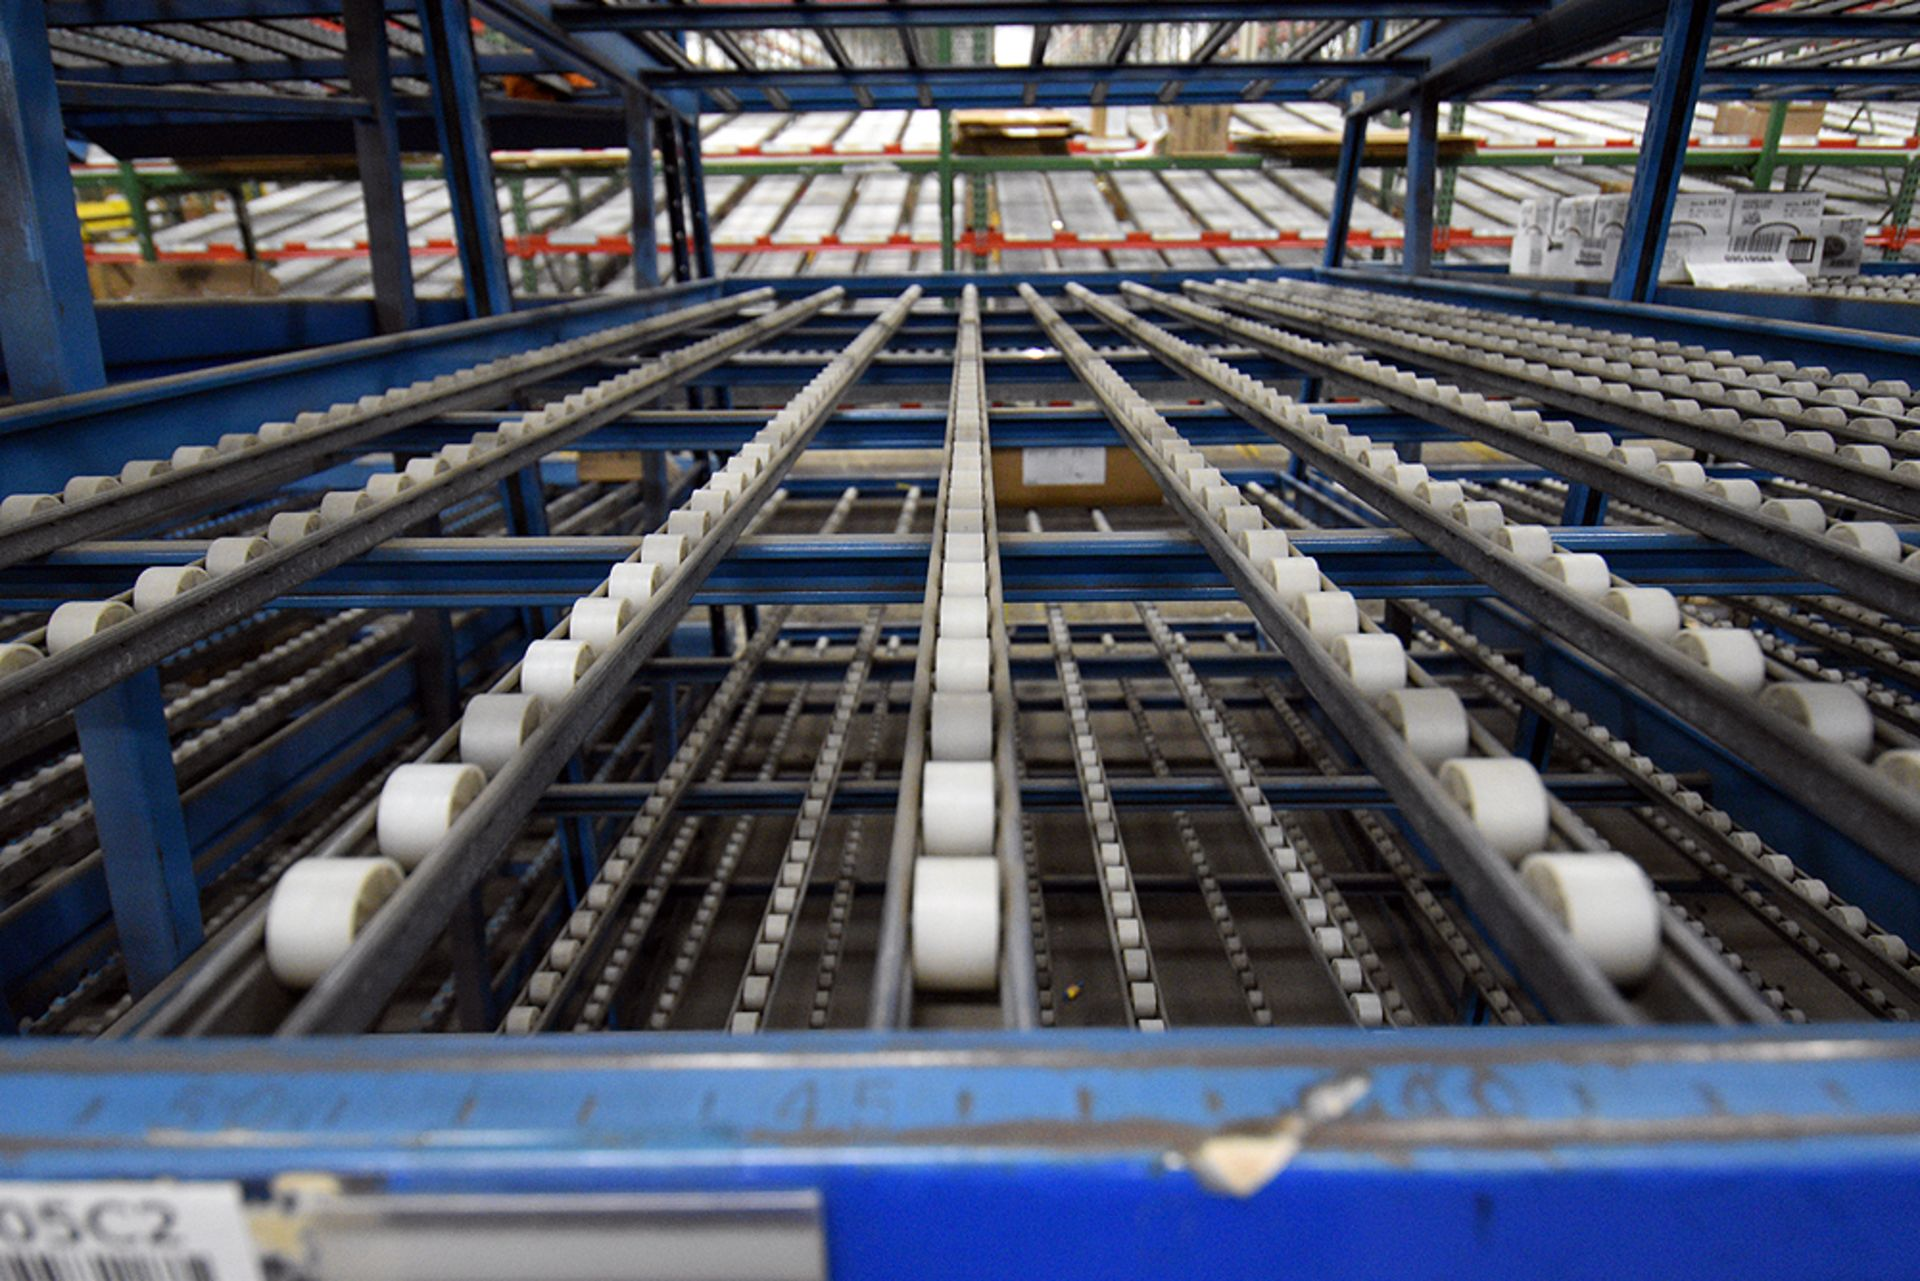 """4-Tier Gravity Fed, Carton Flow Rack (124""""x187""""x95""""H) (108""""x1"""" Rollers) - Image 3 of 4"""